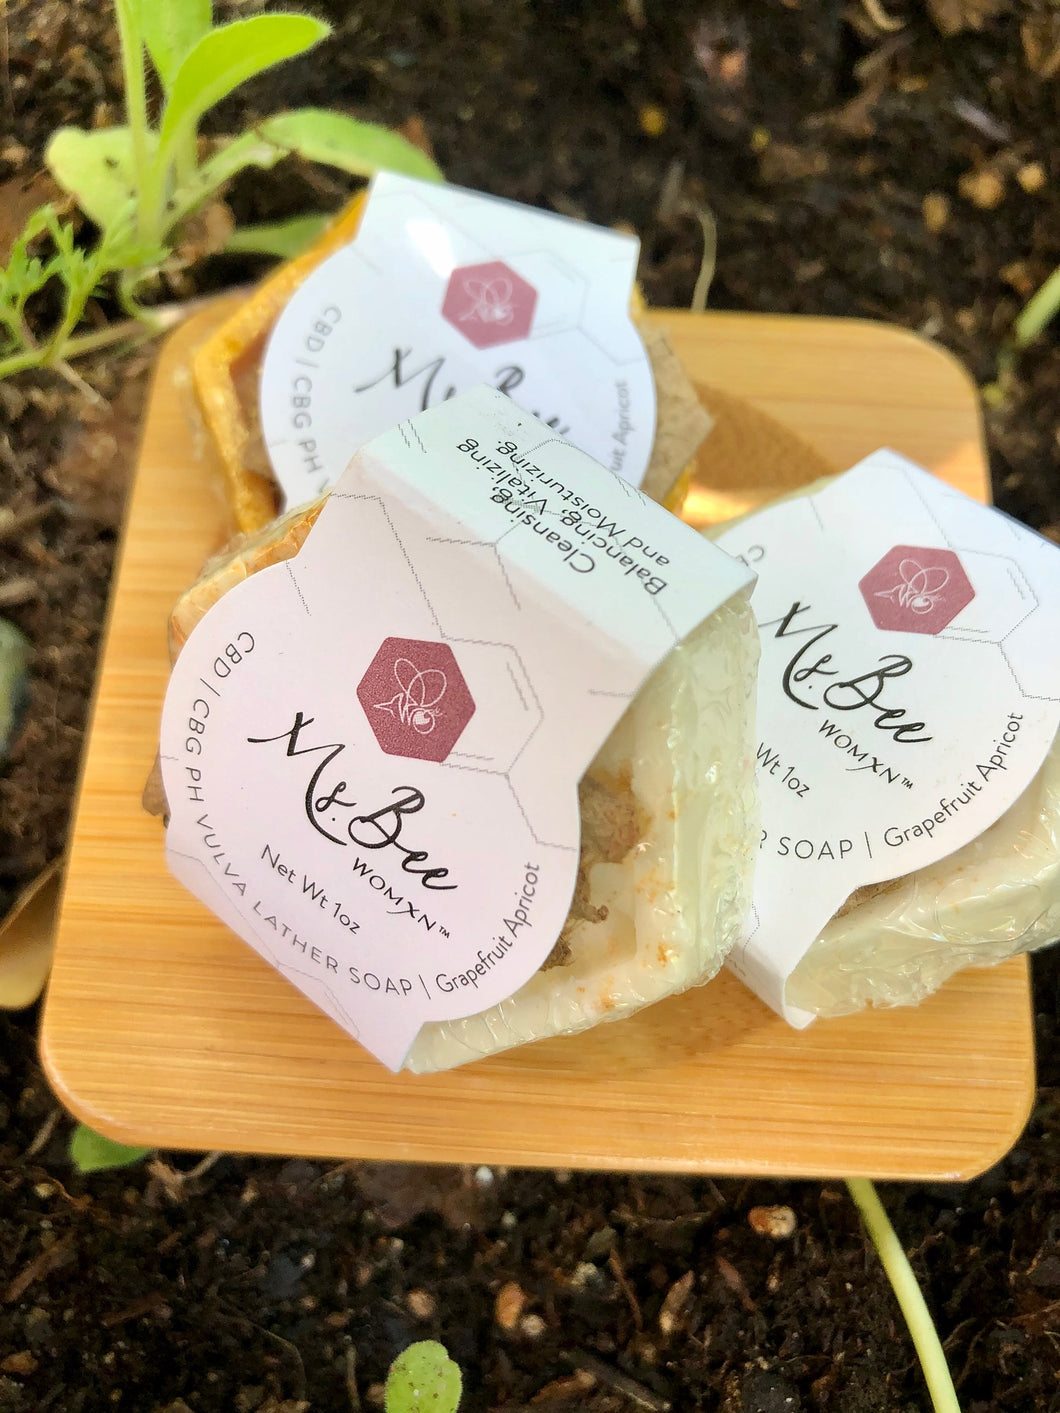 CBD | CBG PH VULVA LATHER SOAP 3 PACK + Bamboo SOAP DISH | Grapefruit Apricot